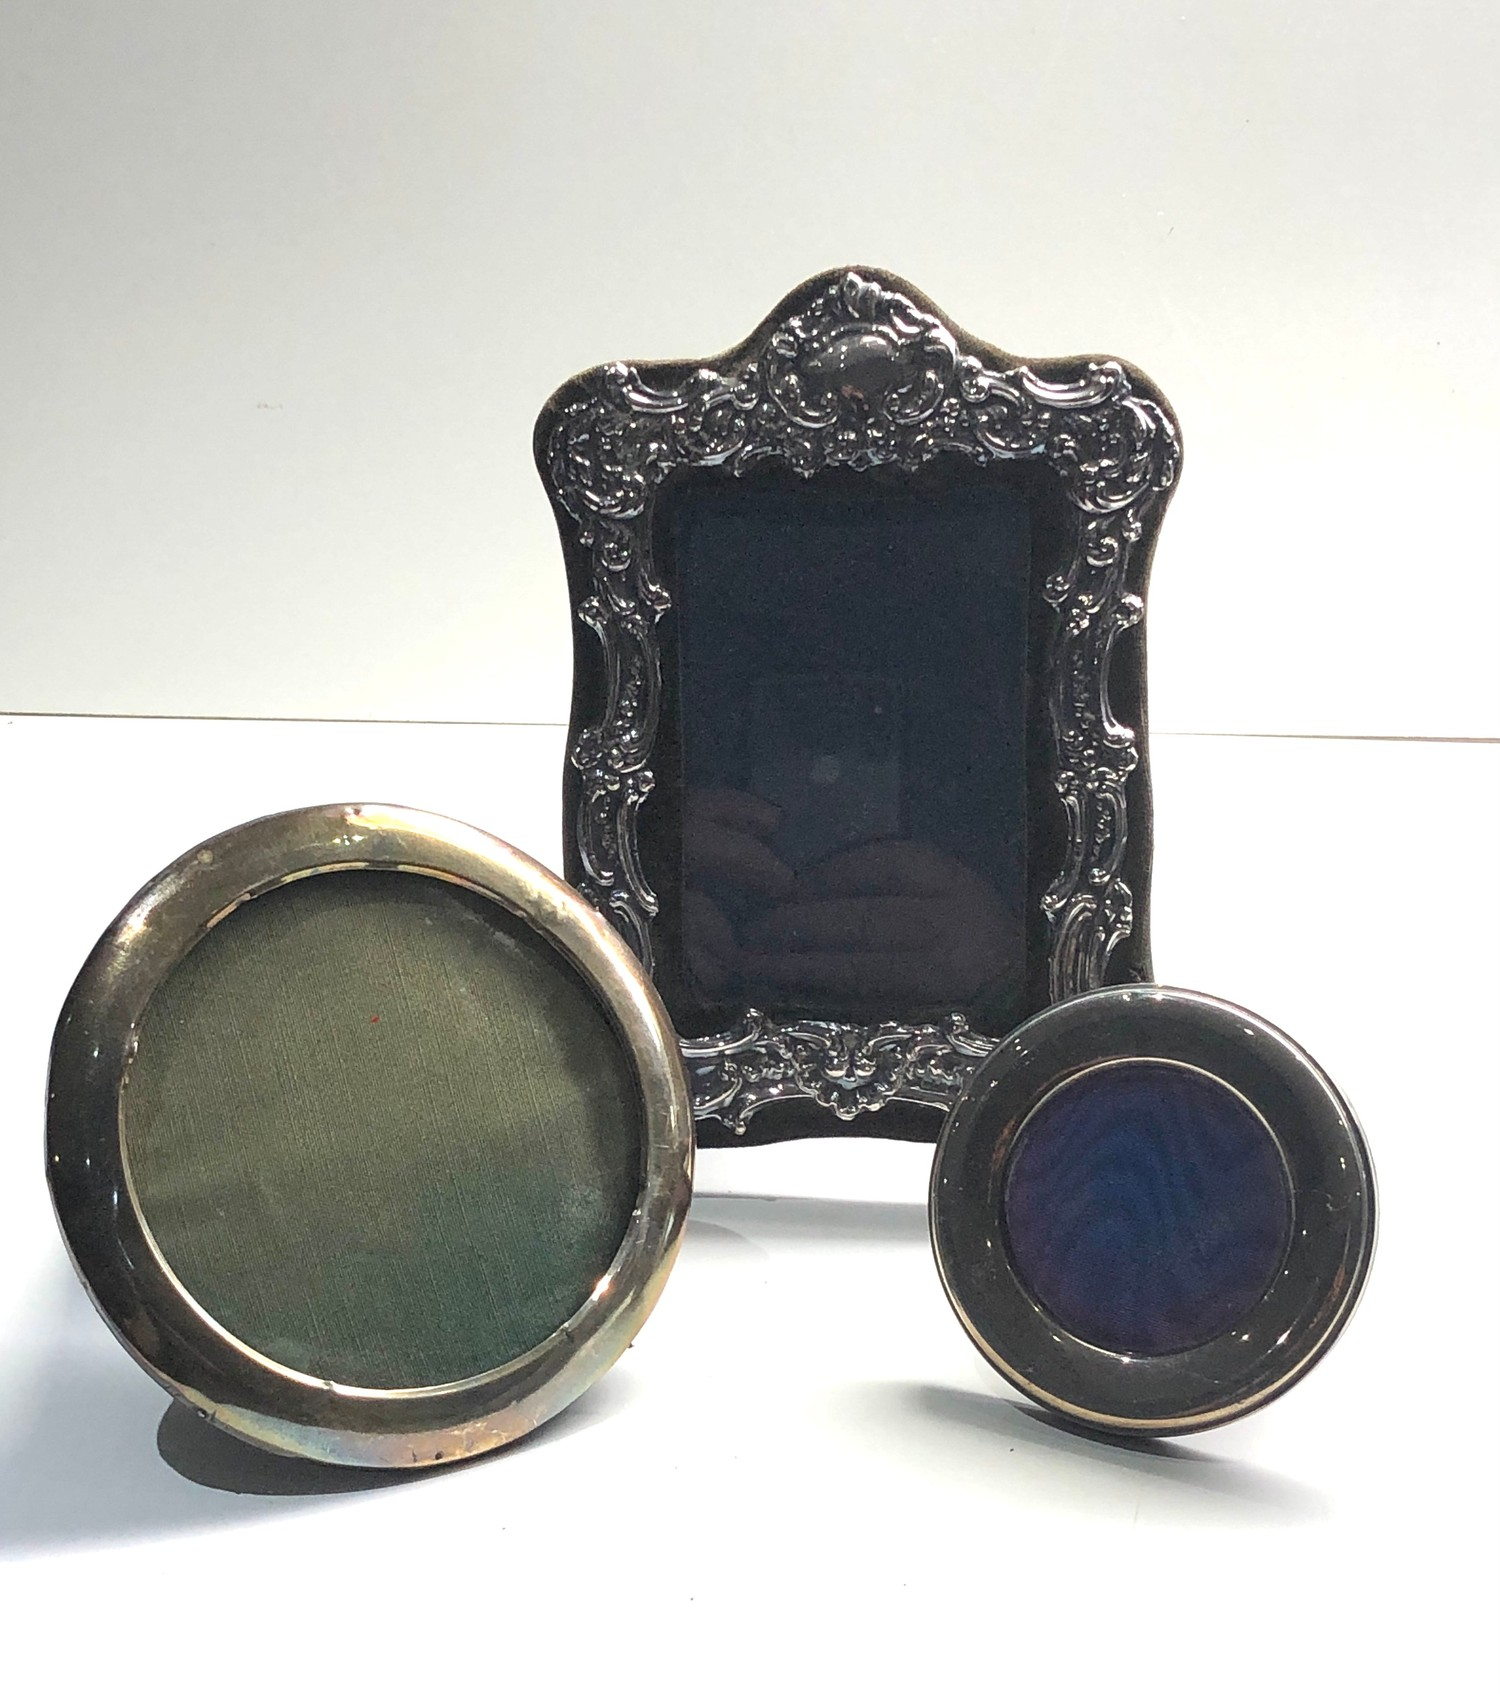 3 vintage silver picture frames largest measures approx 20cm by 16cm